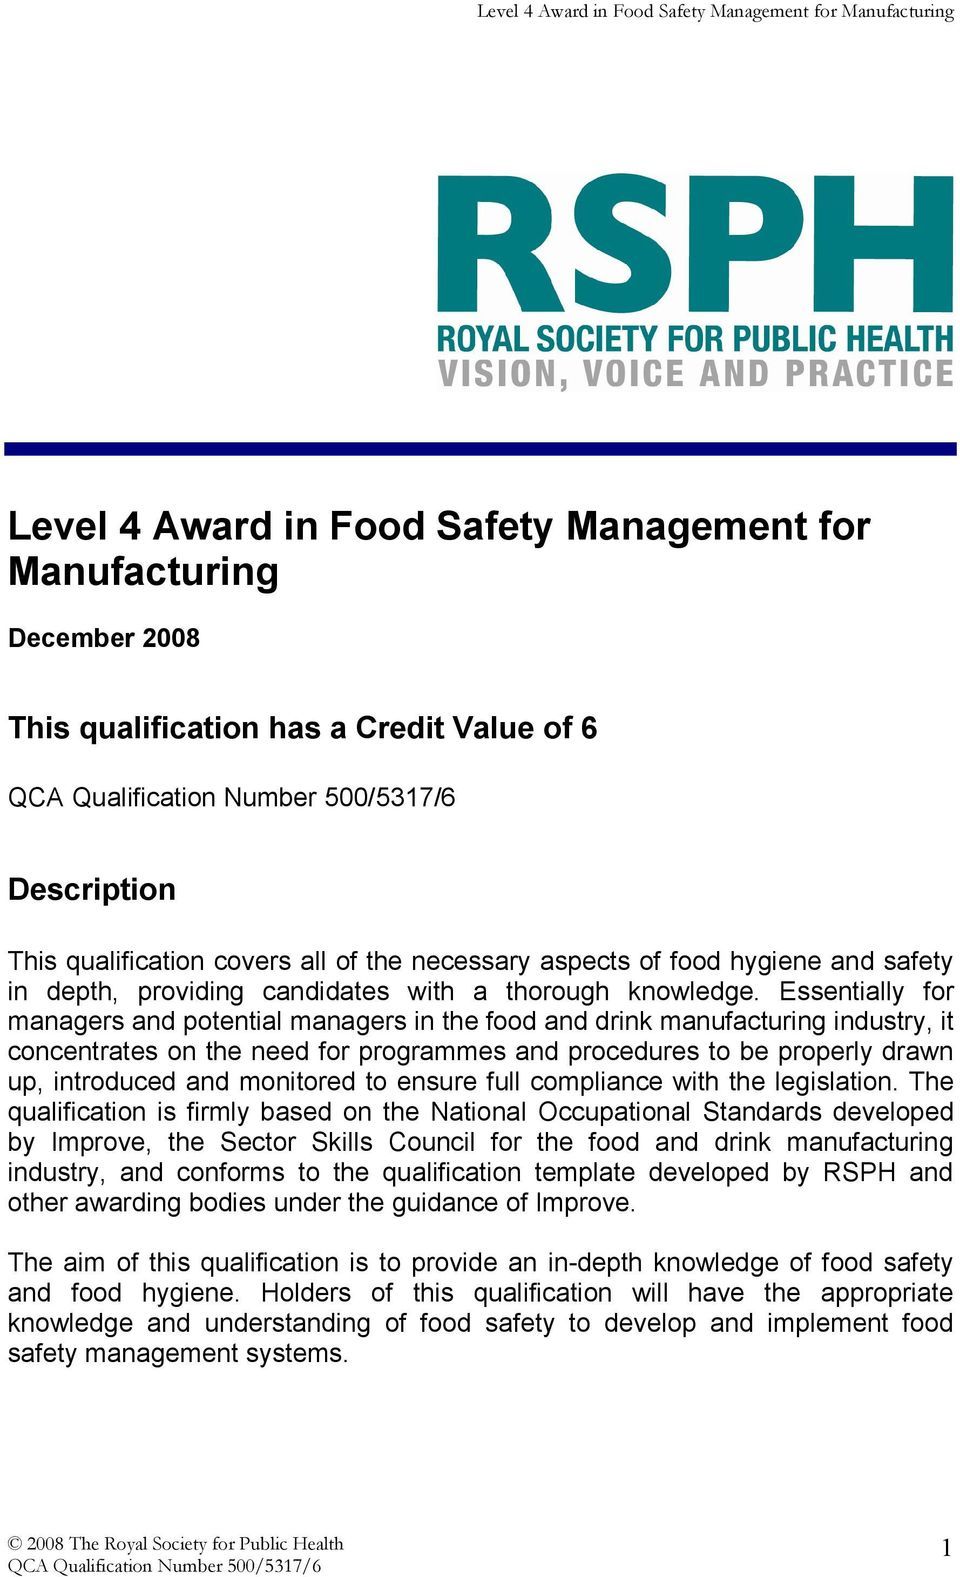 Level 4 Award In Food Safety Management For Manufacturing